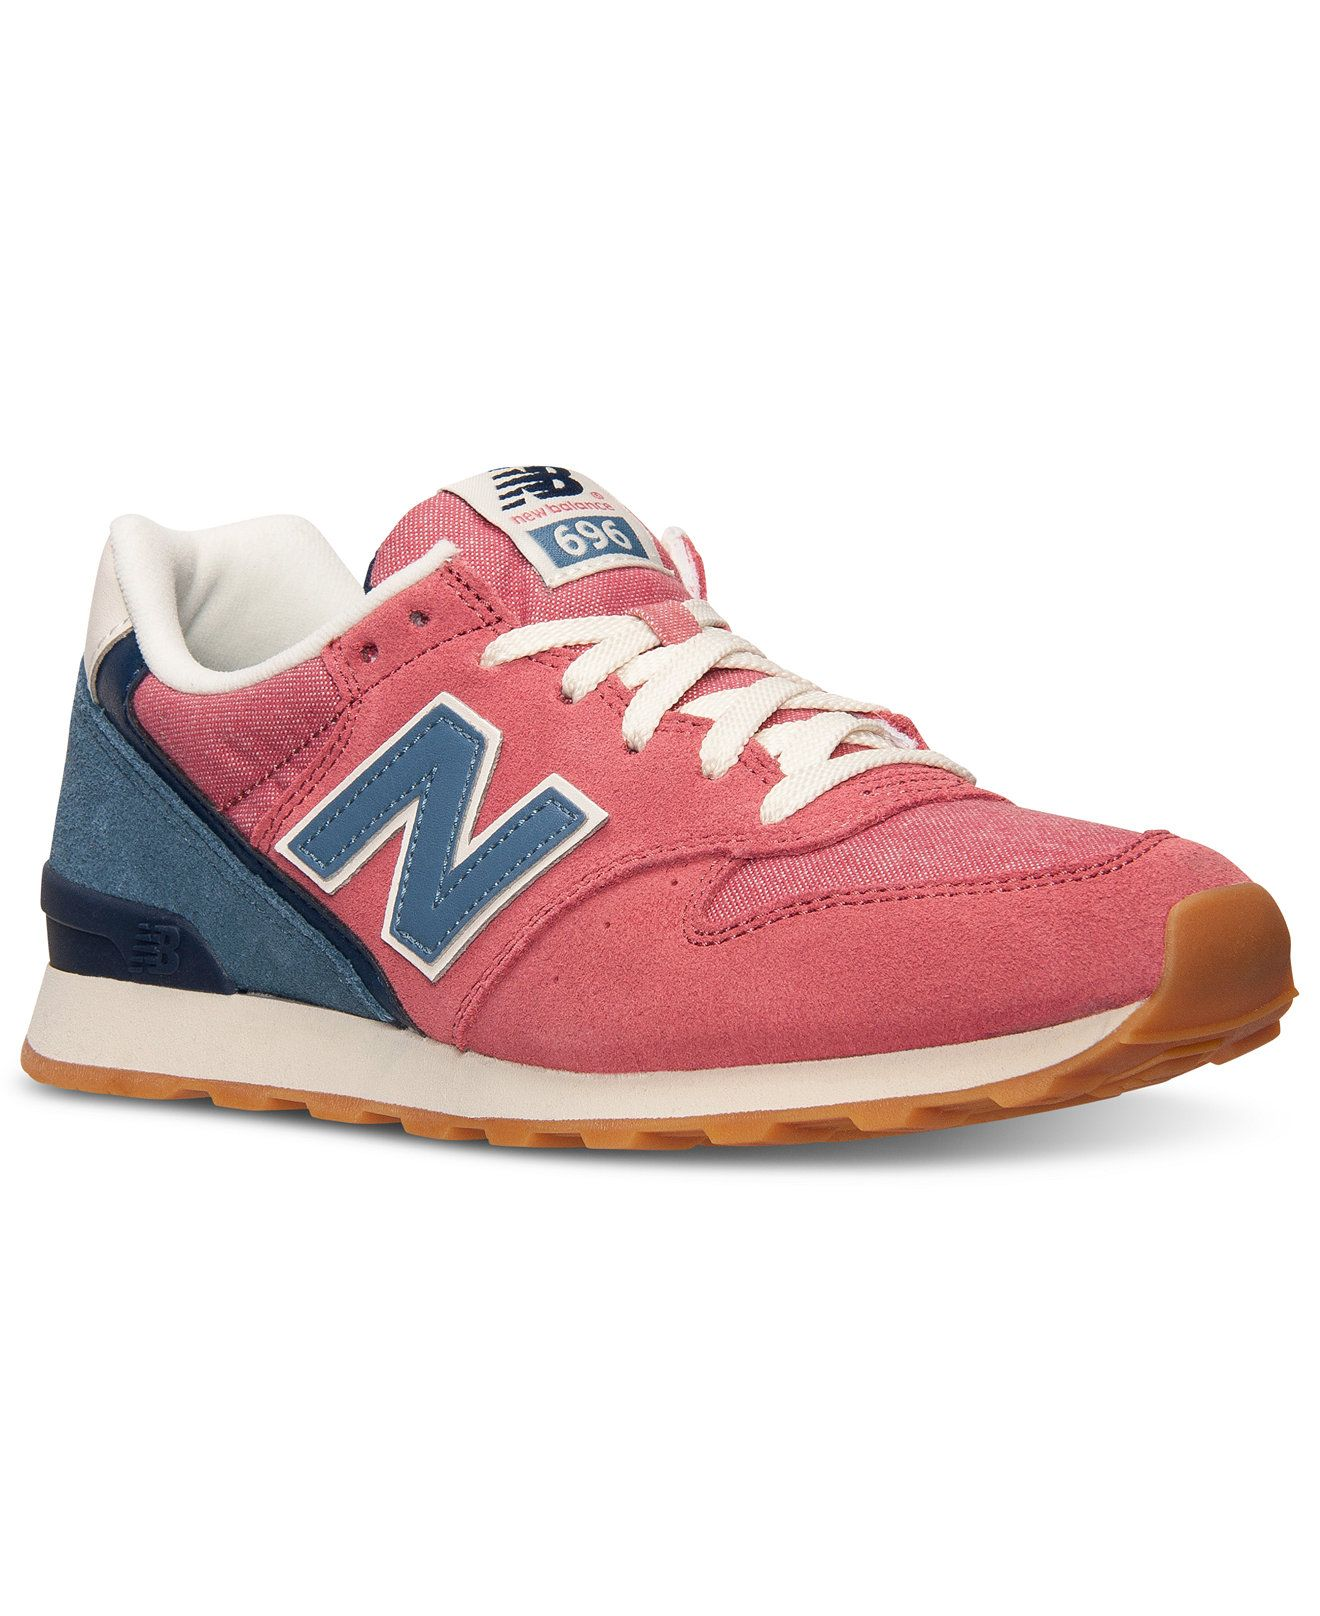 New balance womens 620 capsule casual sneakers from